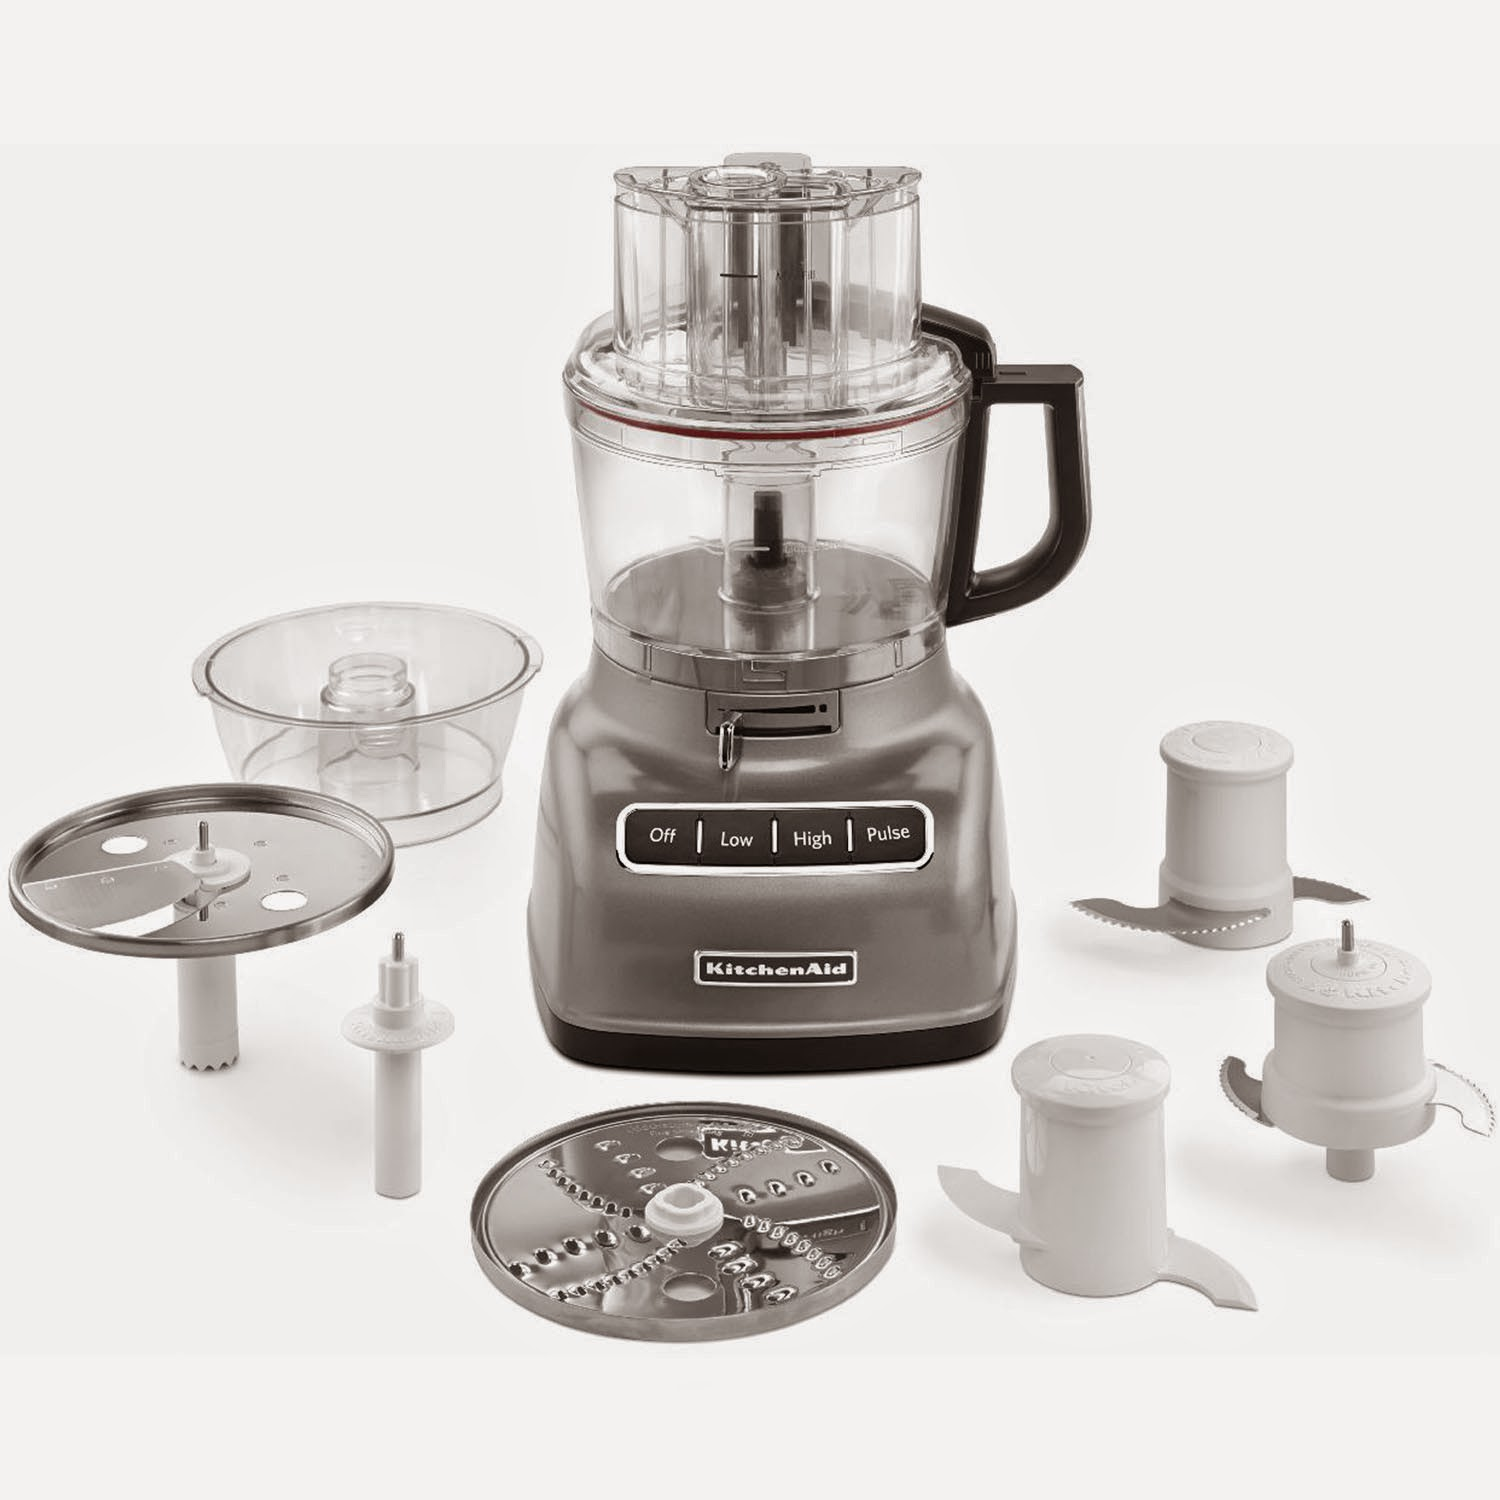 Kitchenaid pink food processor - And A Good Juicer